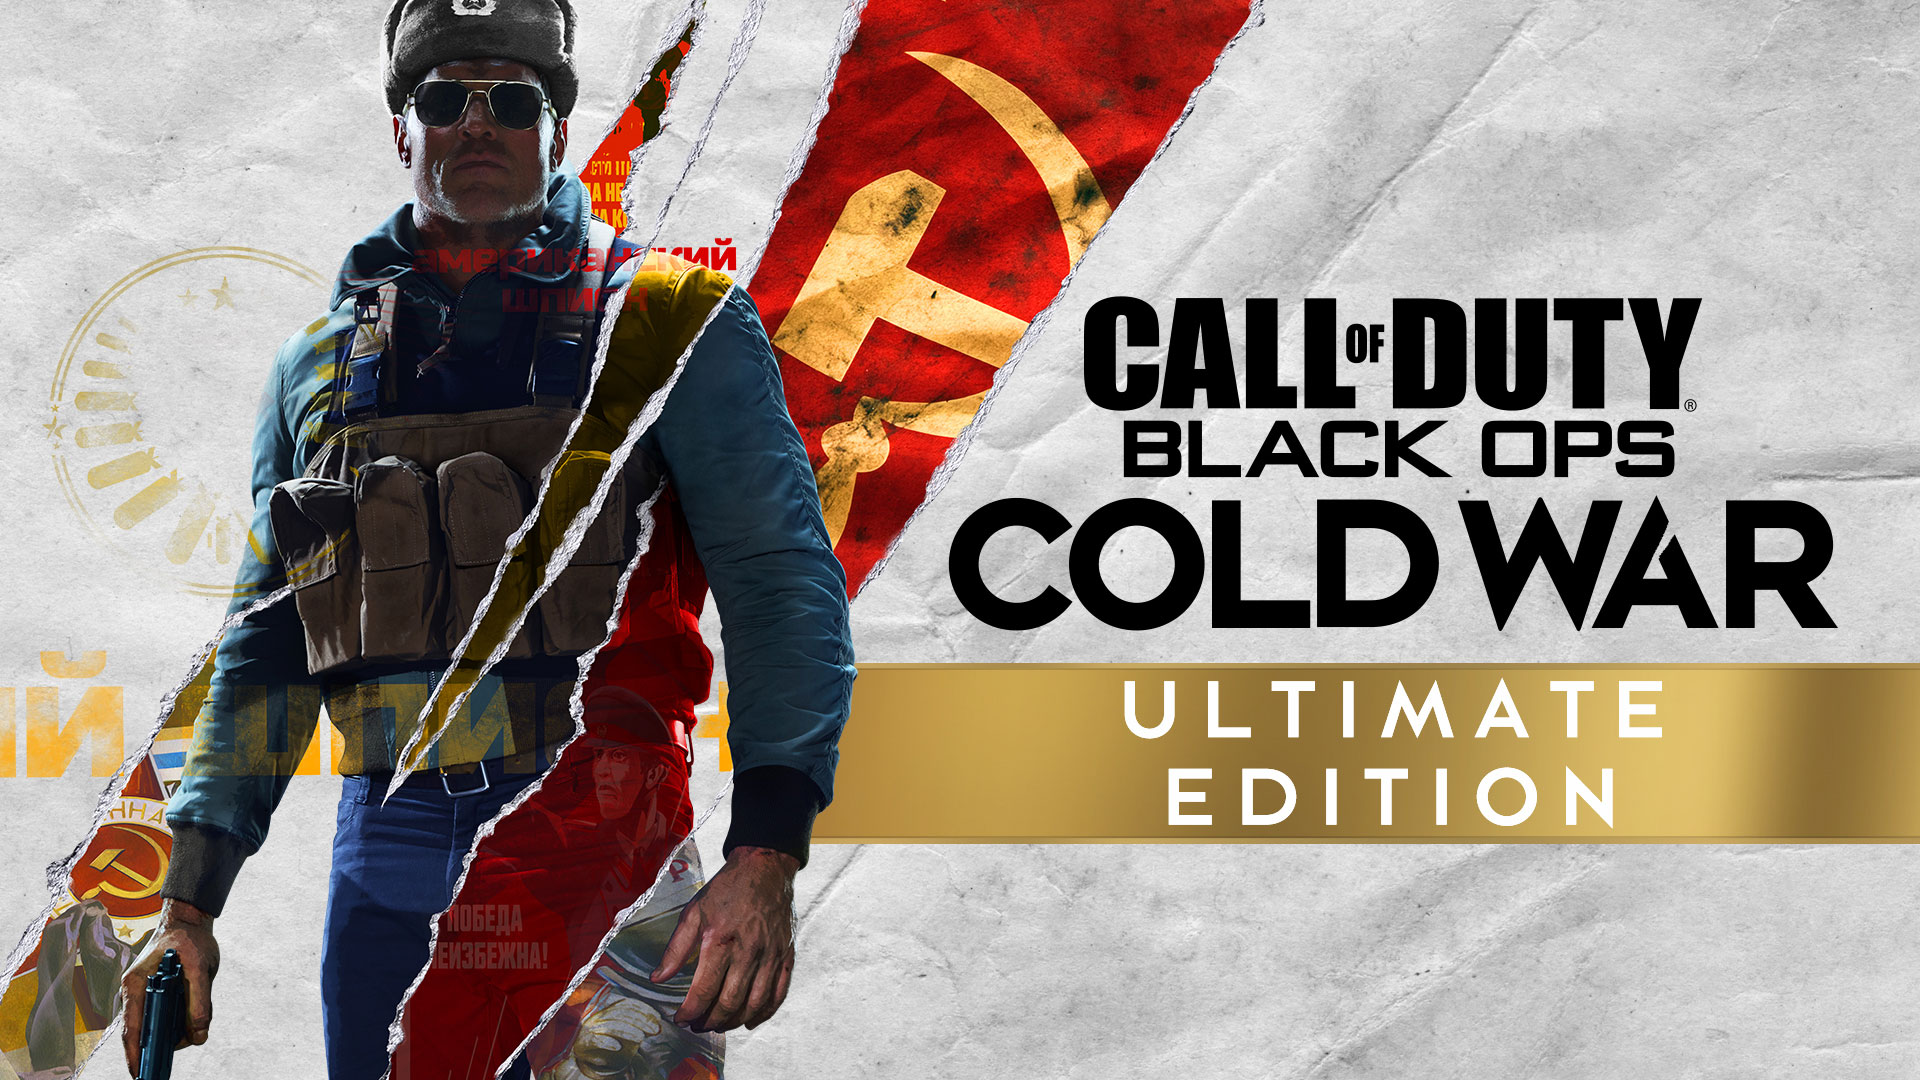 Announcement Call Of Duty Black Ops Cold War Editions Detailed Available For Pre Order Now